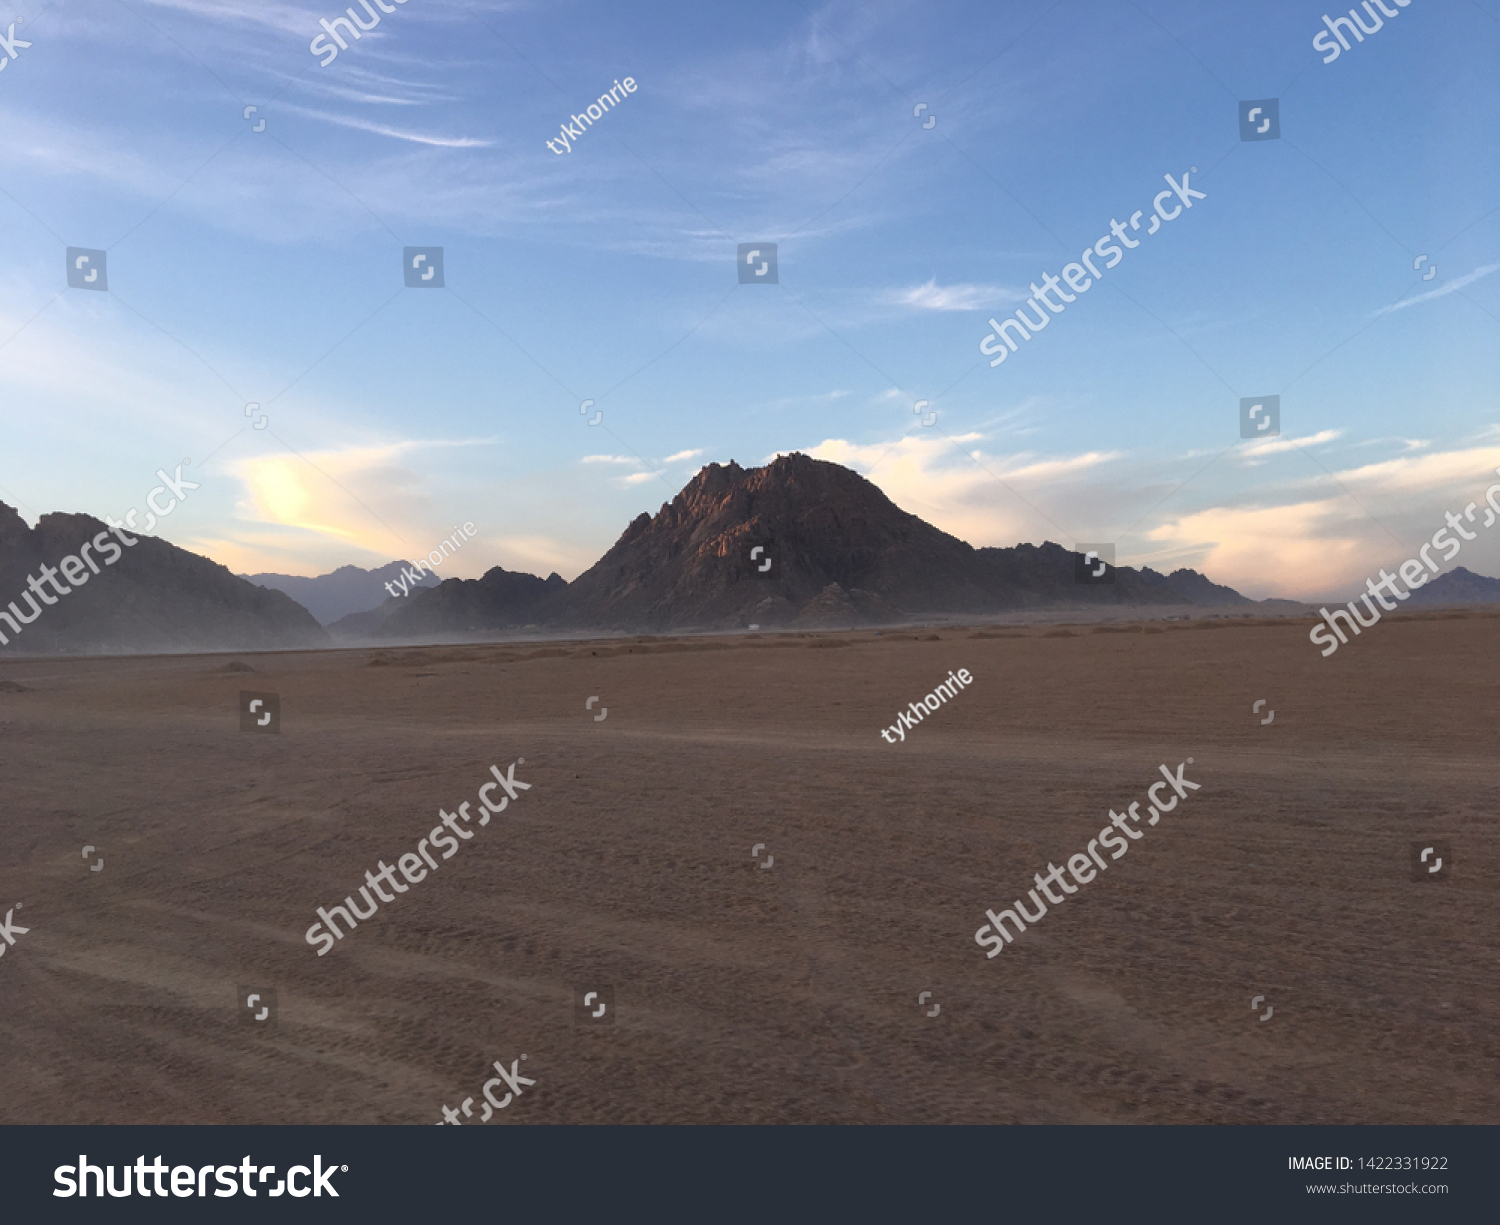 stock-photo-egypt-desert-and-mountain-ex